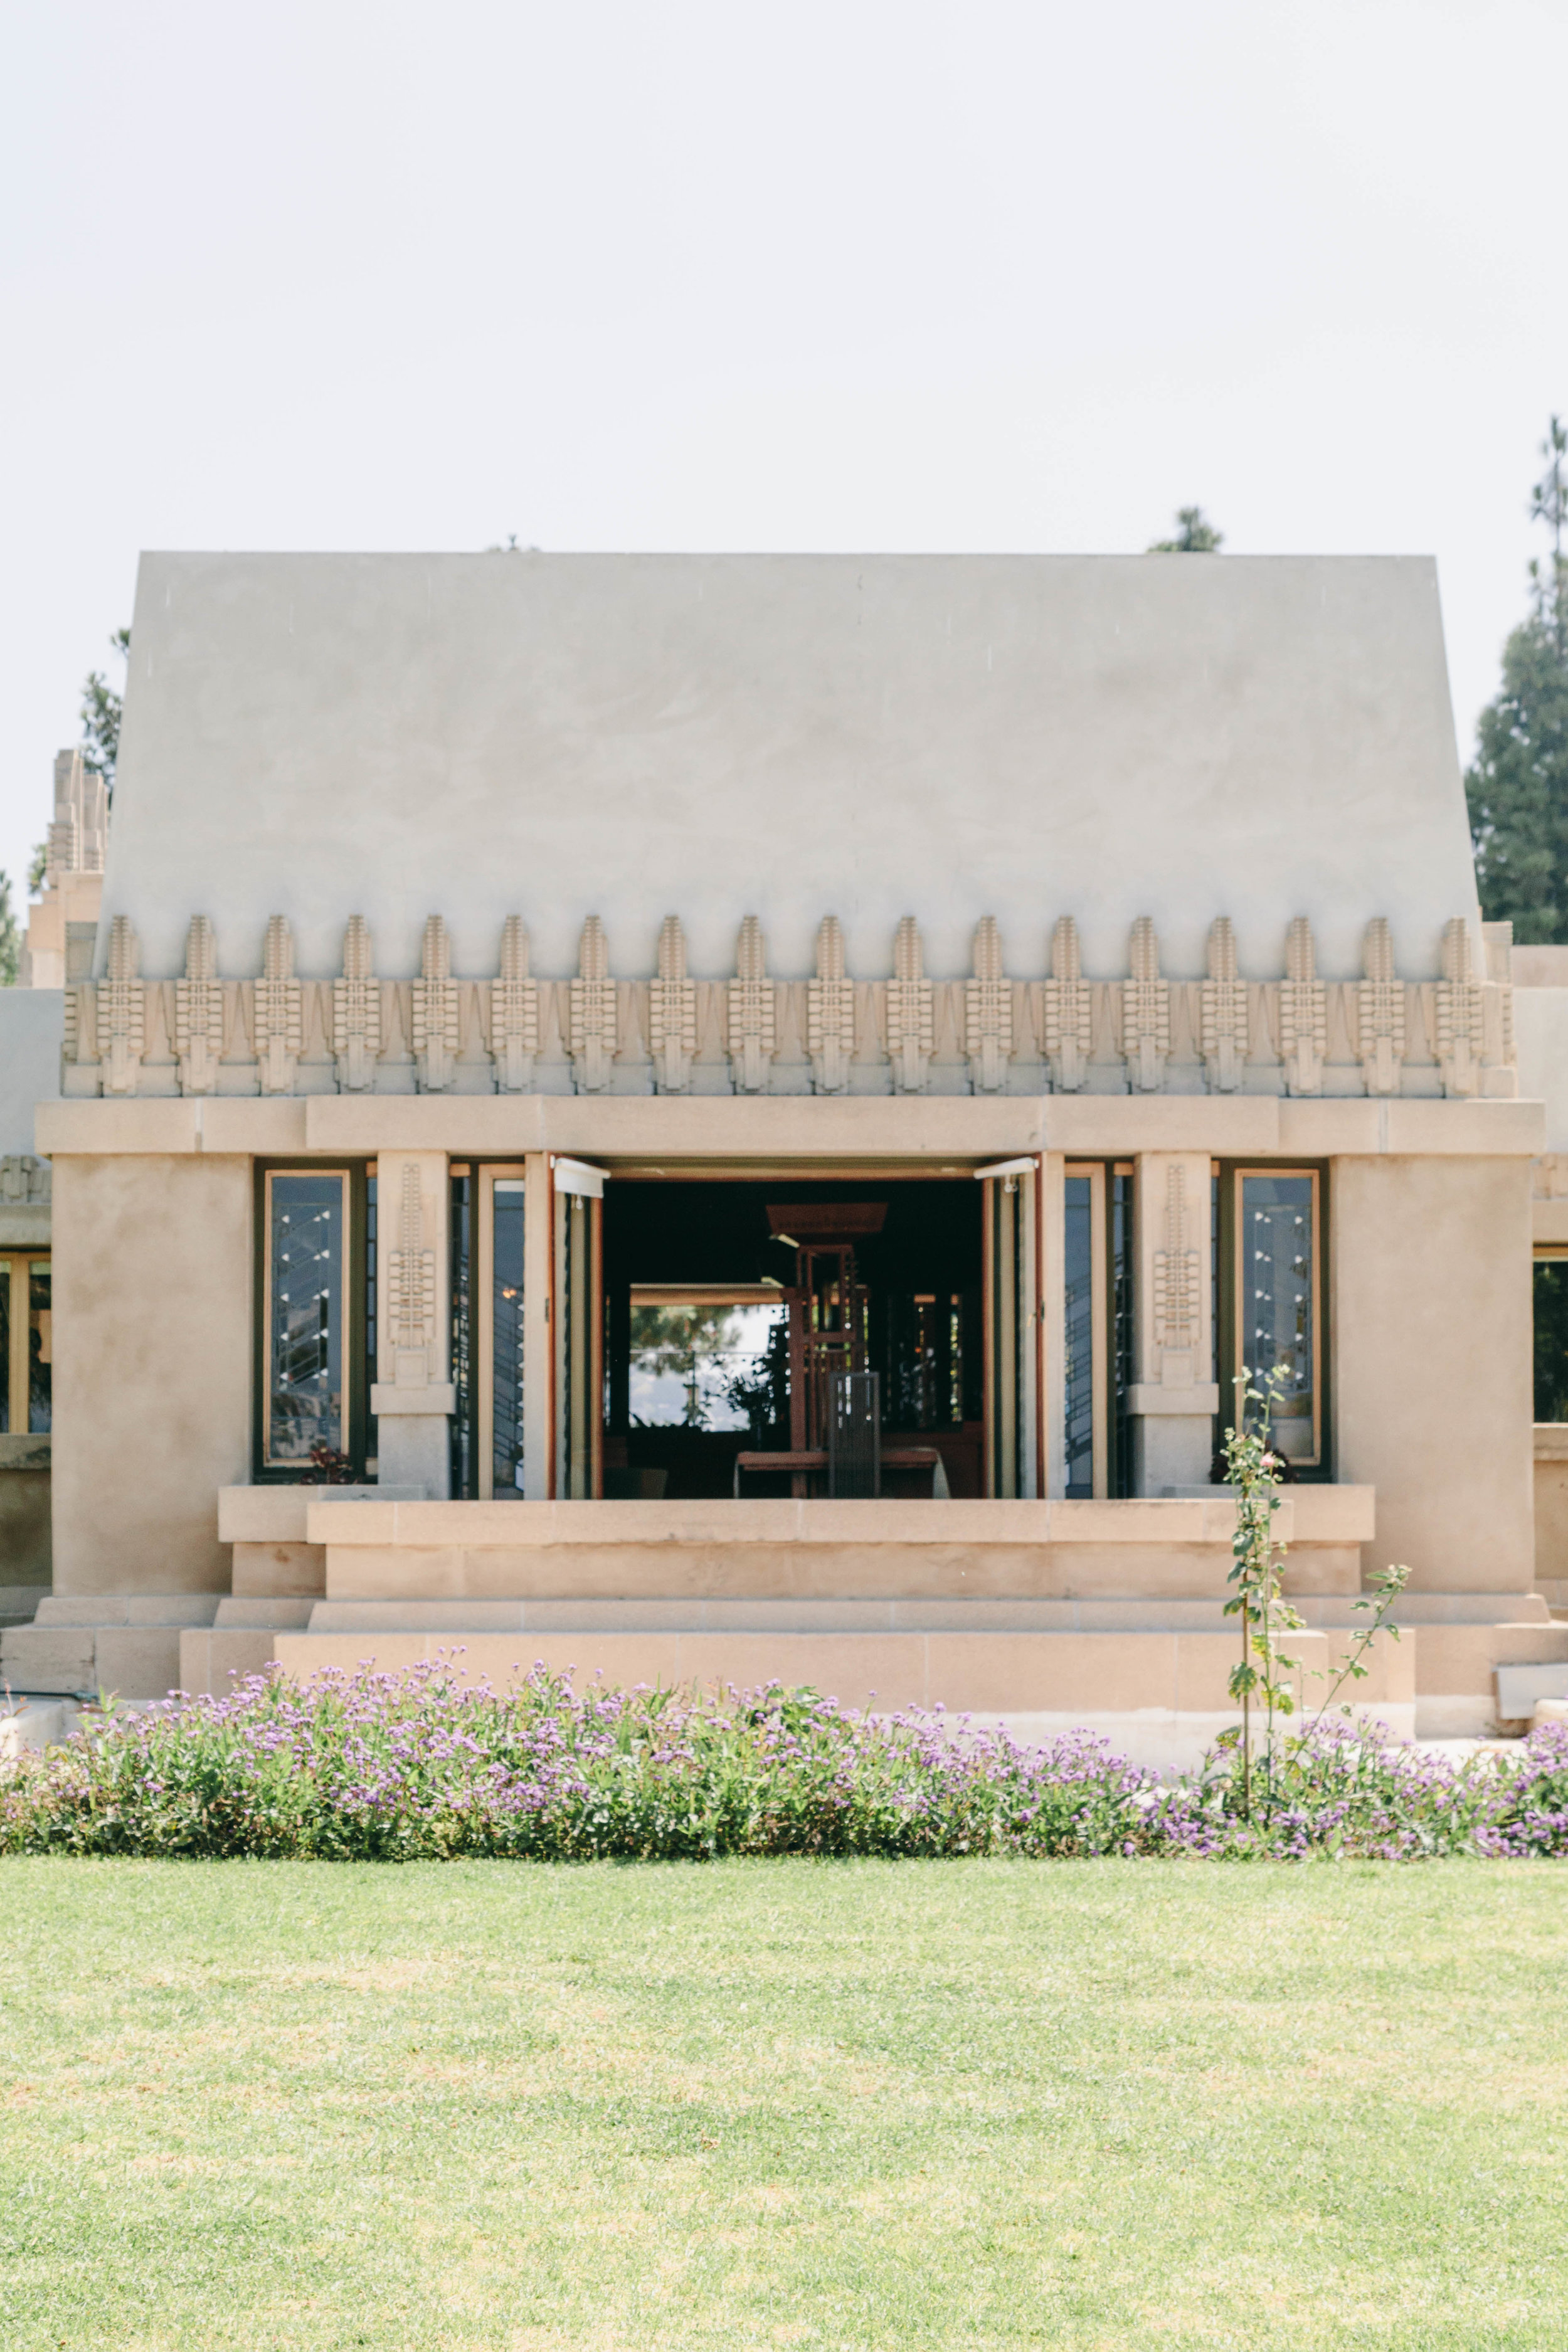 Frank Lloyd Wright's Hollyhock House in Los Angeles. This is the view of the main living area on the east-west axis of the house.